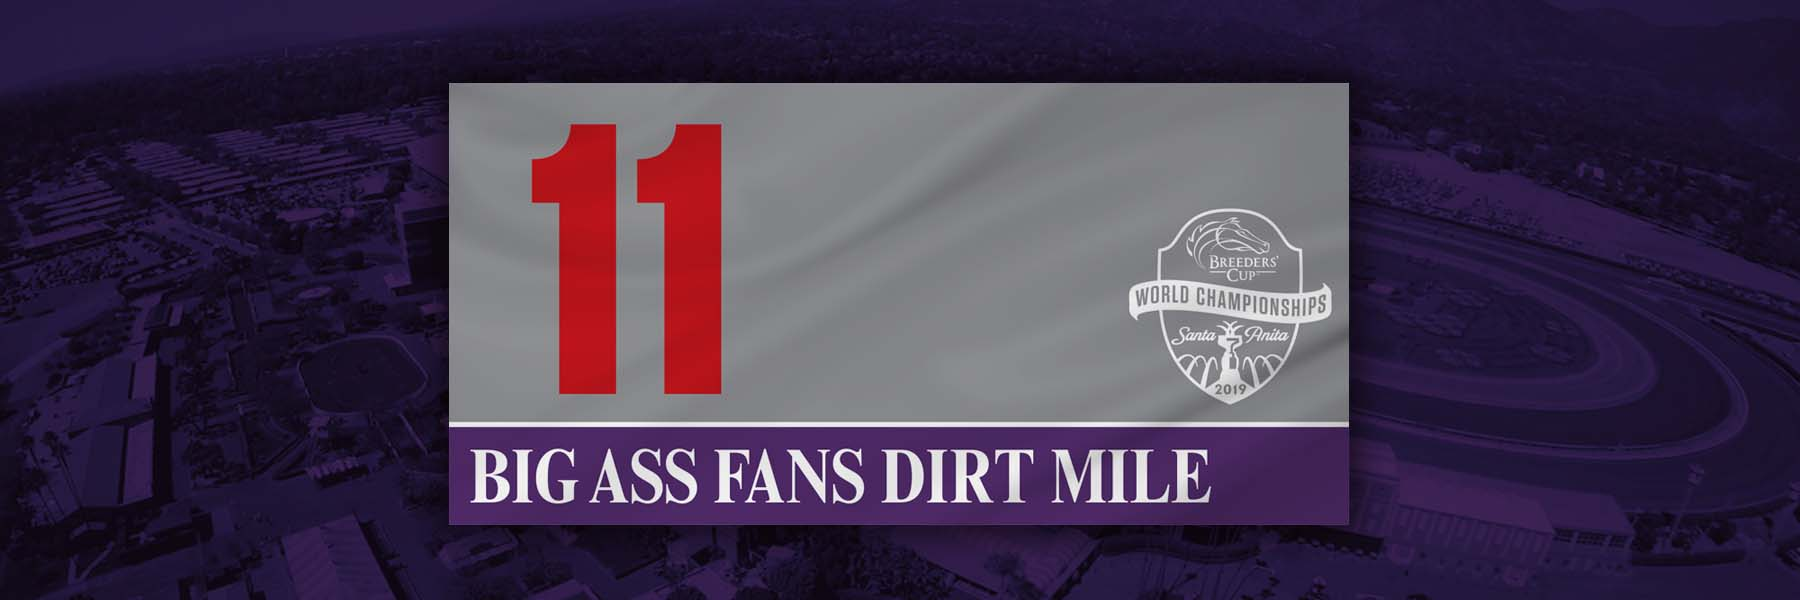 Breeders' Cup Dirt Mile Analysis and Betting Strategies for November 2nd, 2019